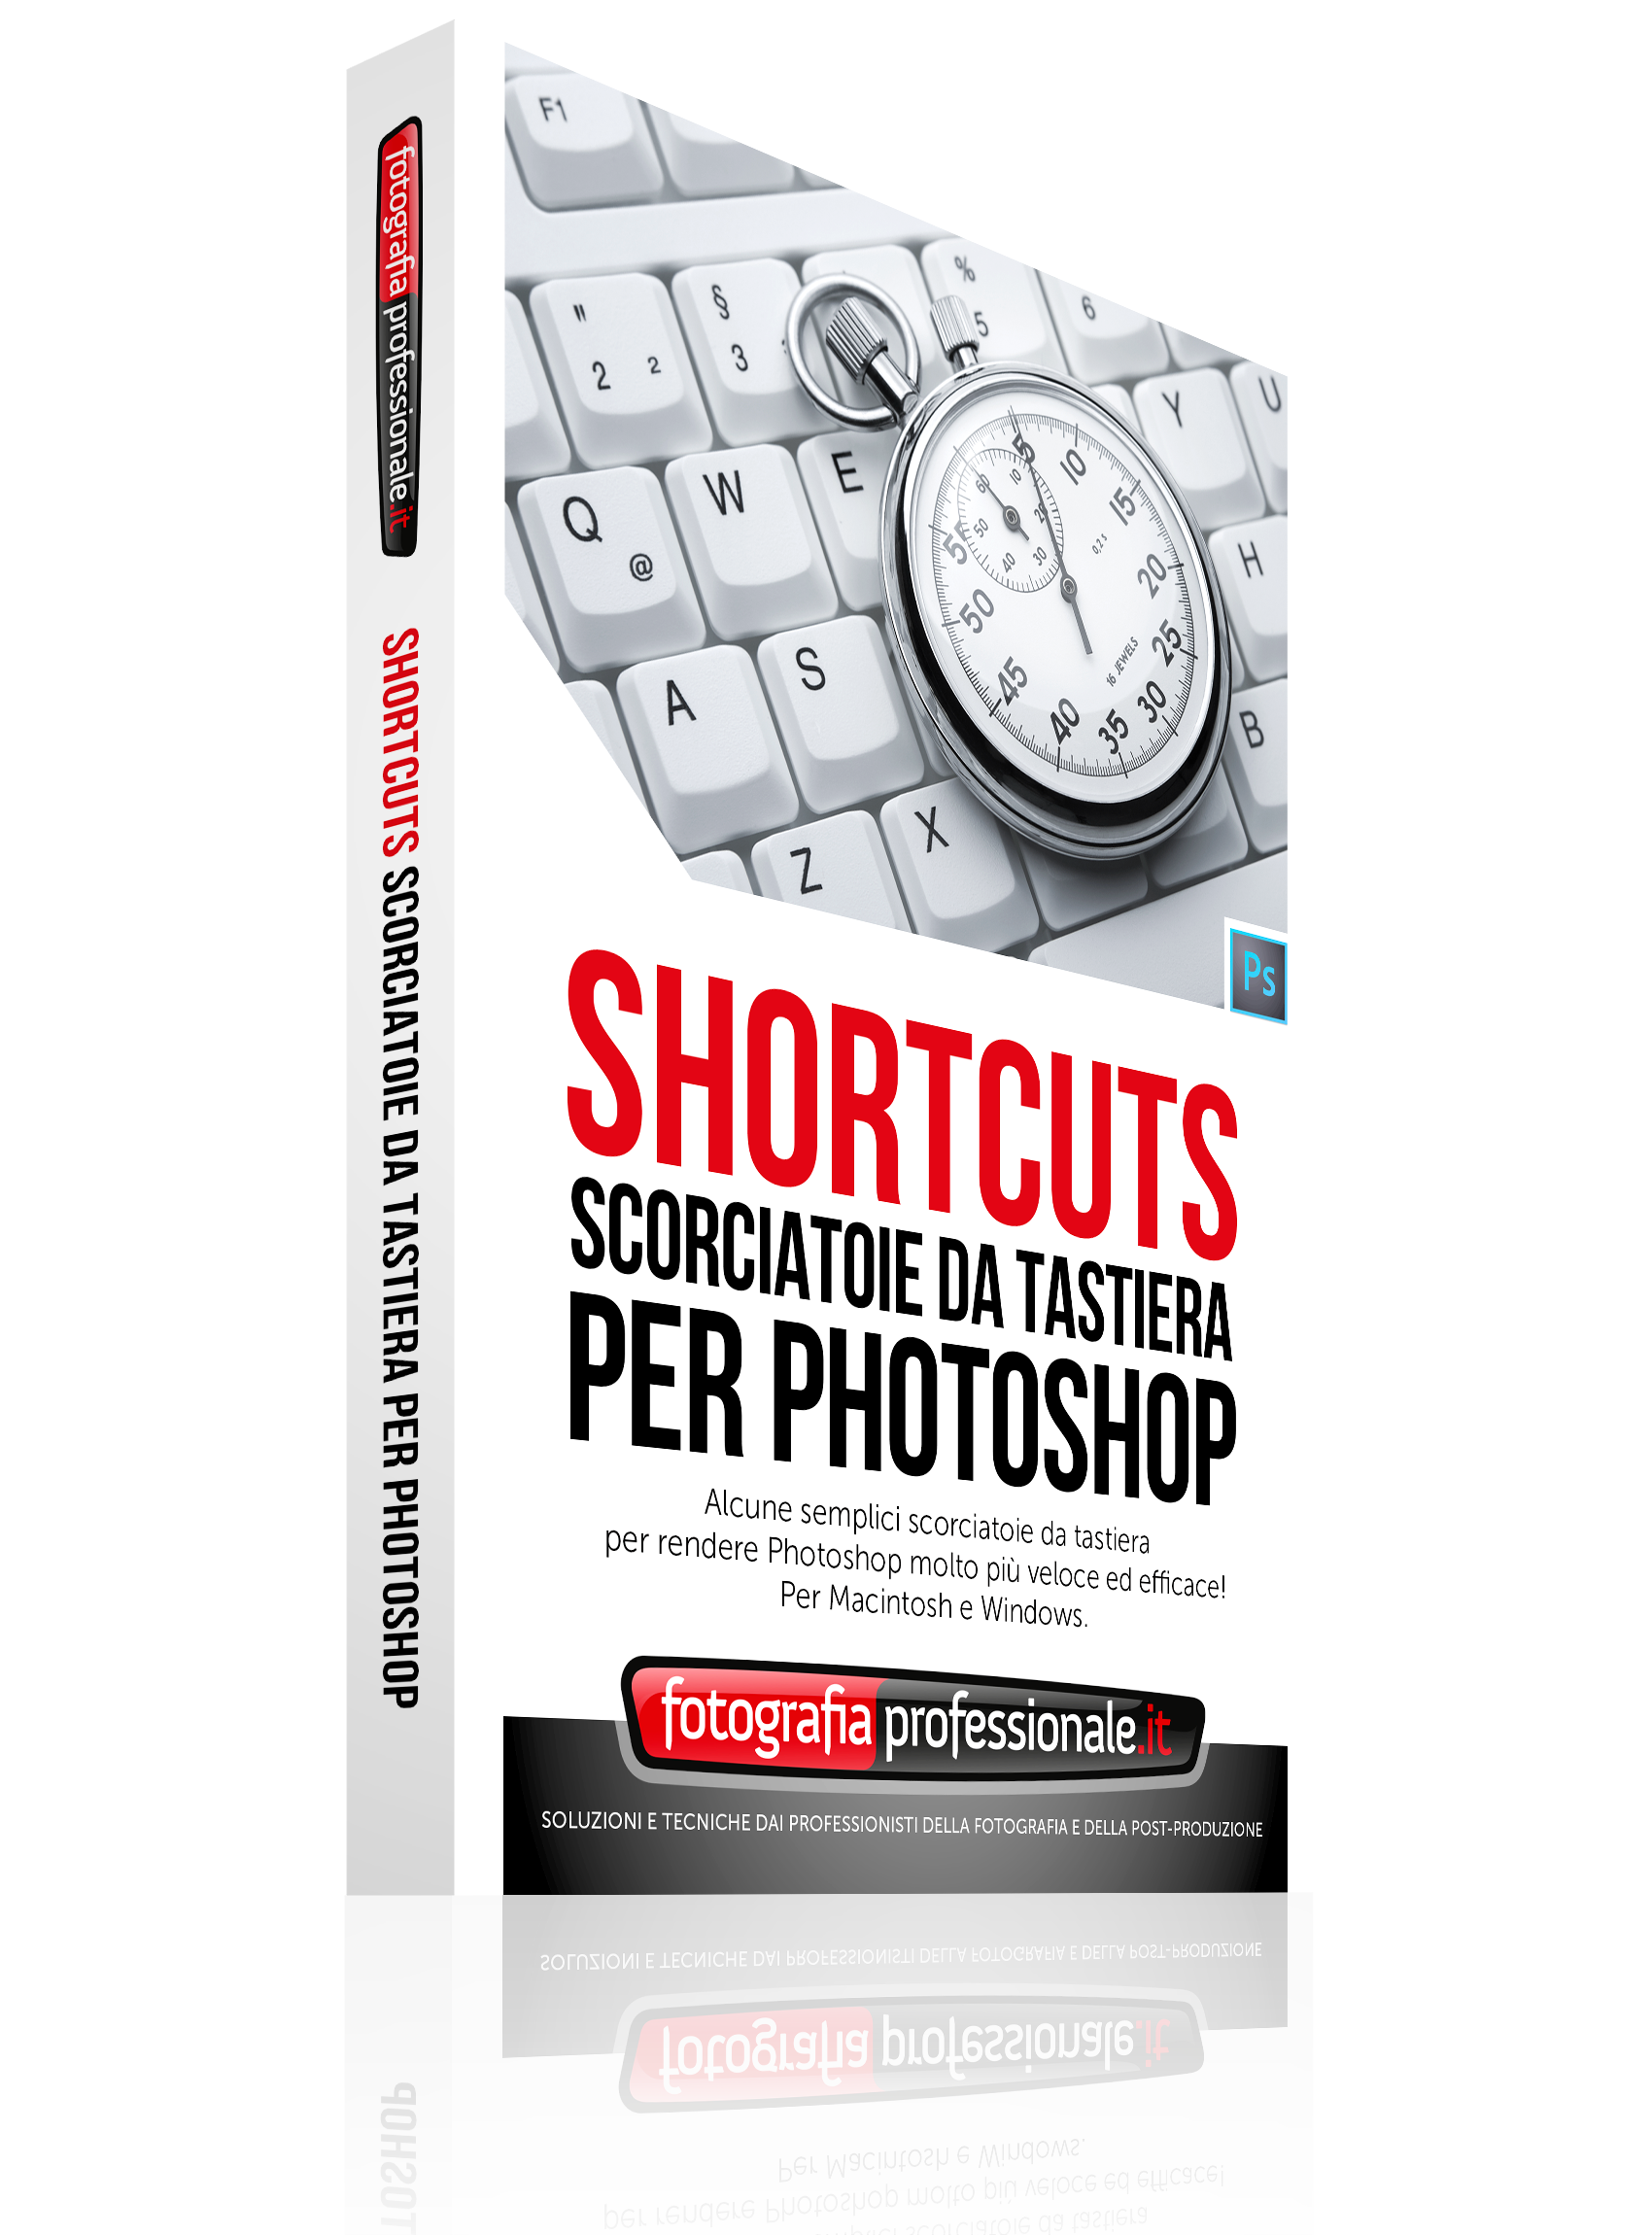 Shortcut - Scorciatoie da Tastiera per Photoshop